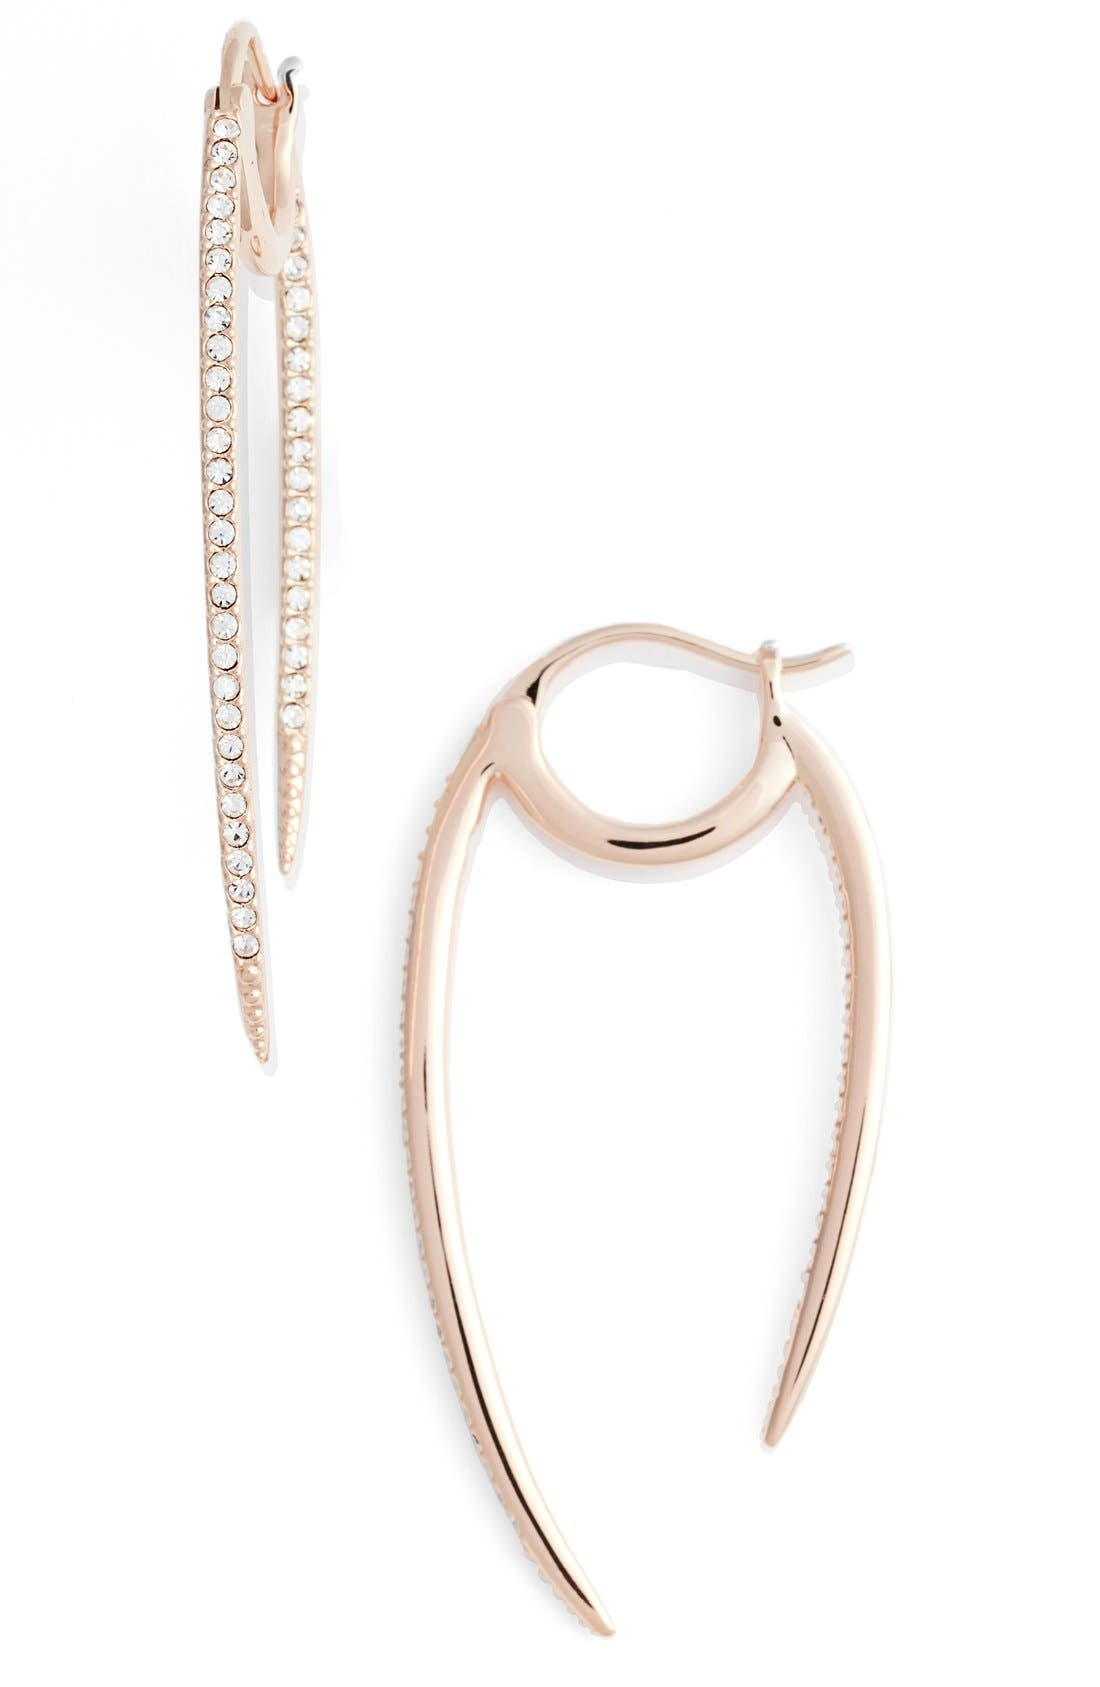 Main Image - Nadri 'Crescent' Linear Hoop Earrings